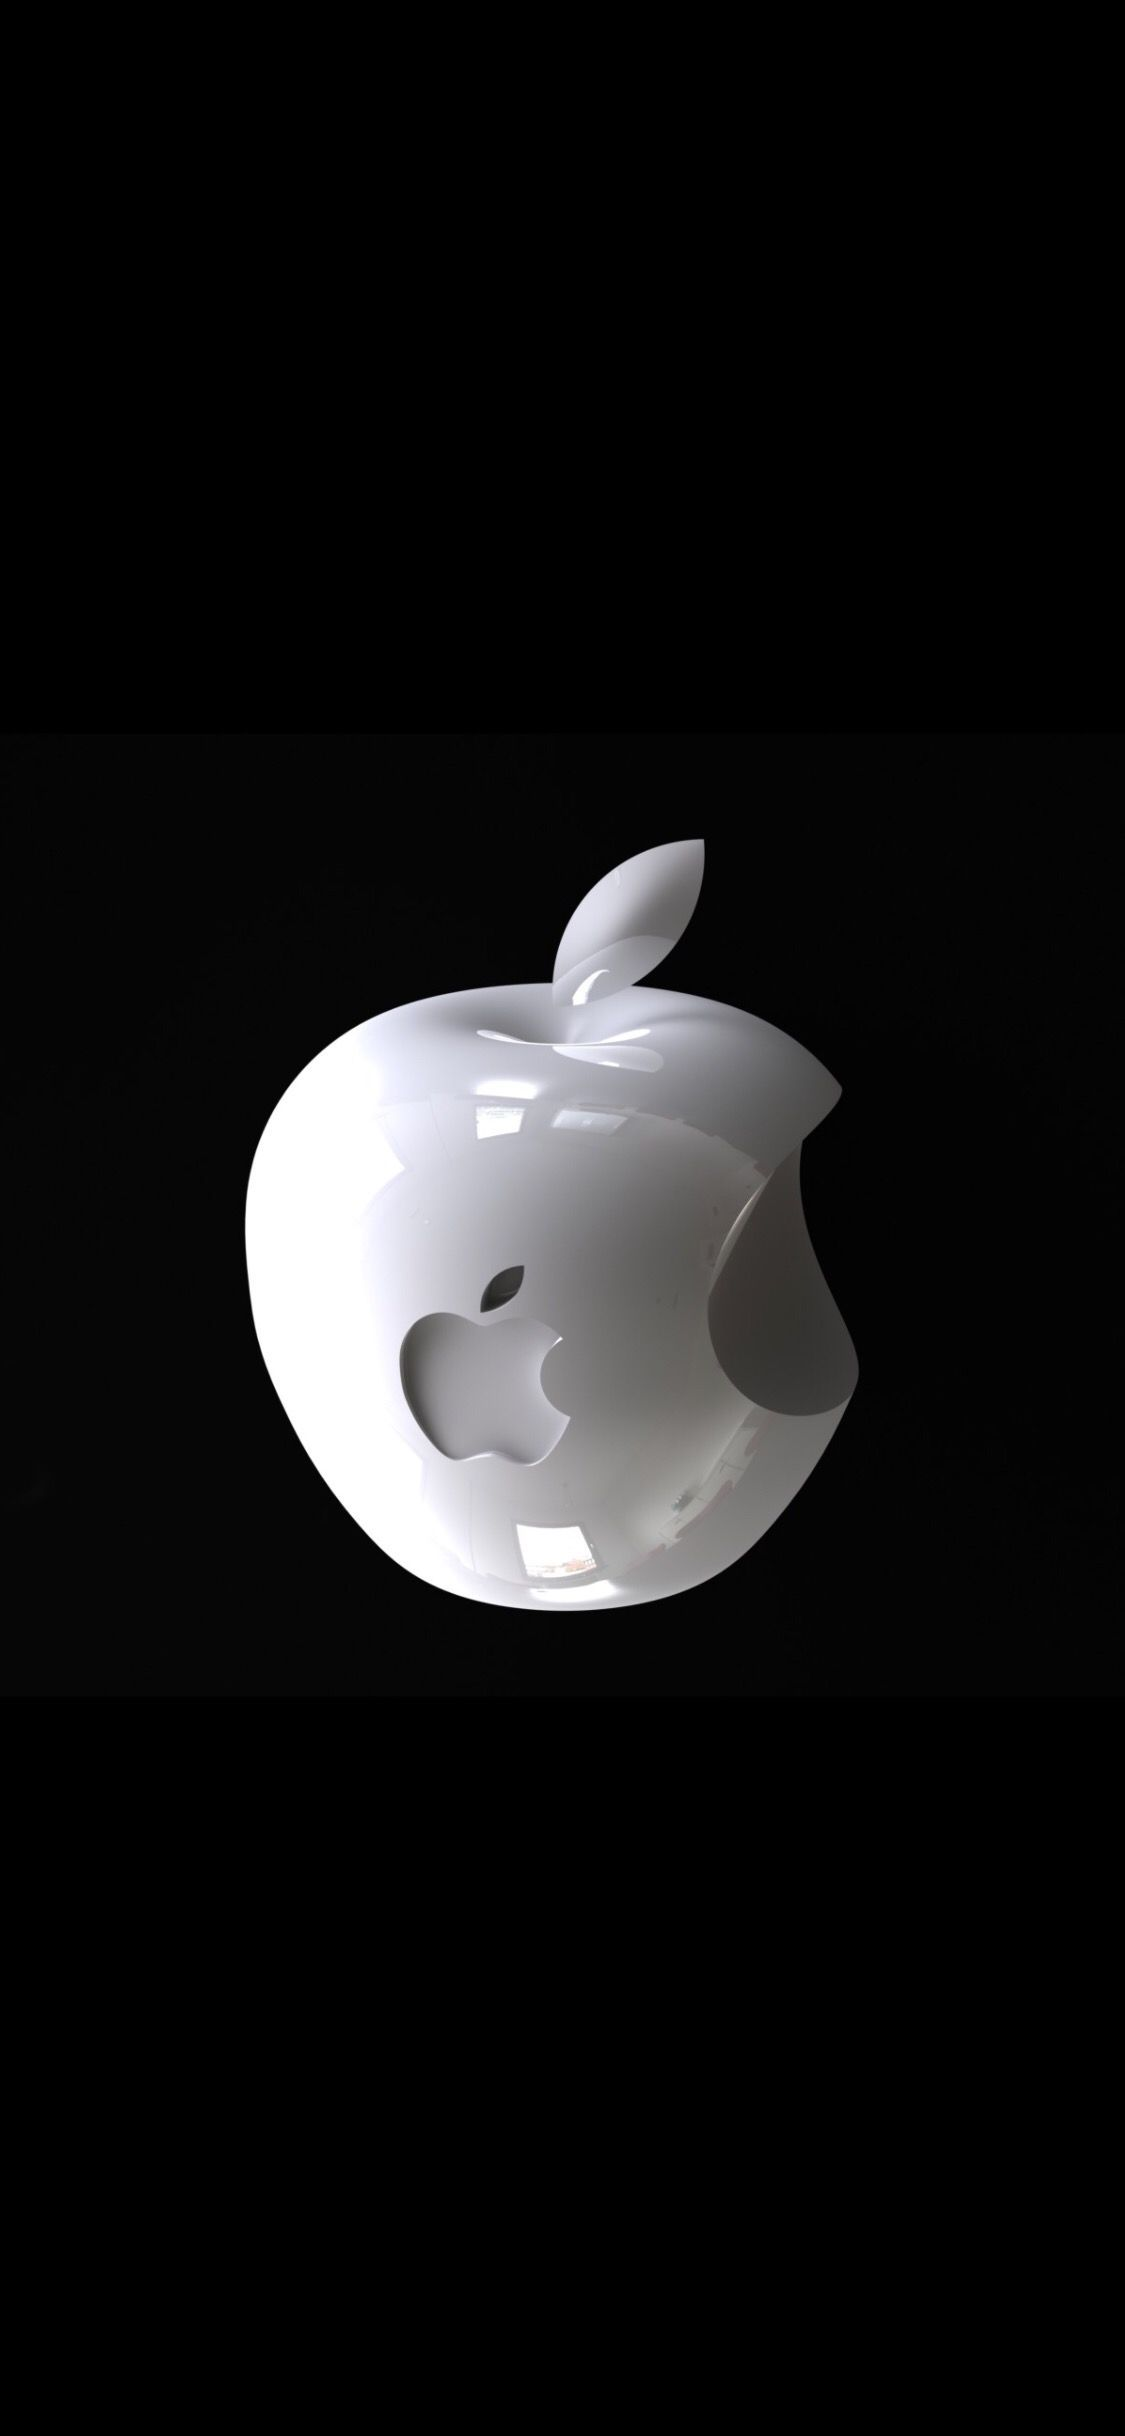 3D Apple IPhone Wallpapers Top Free 3D Apple IPhone